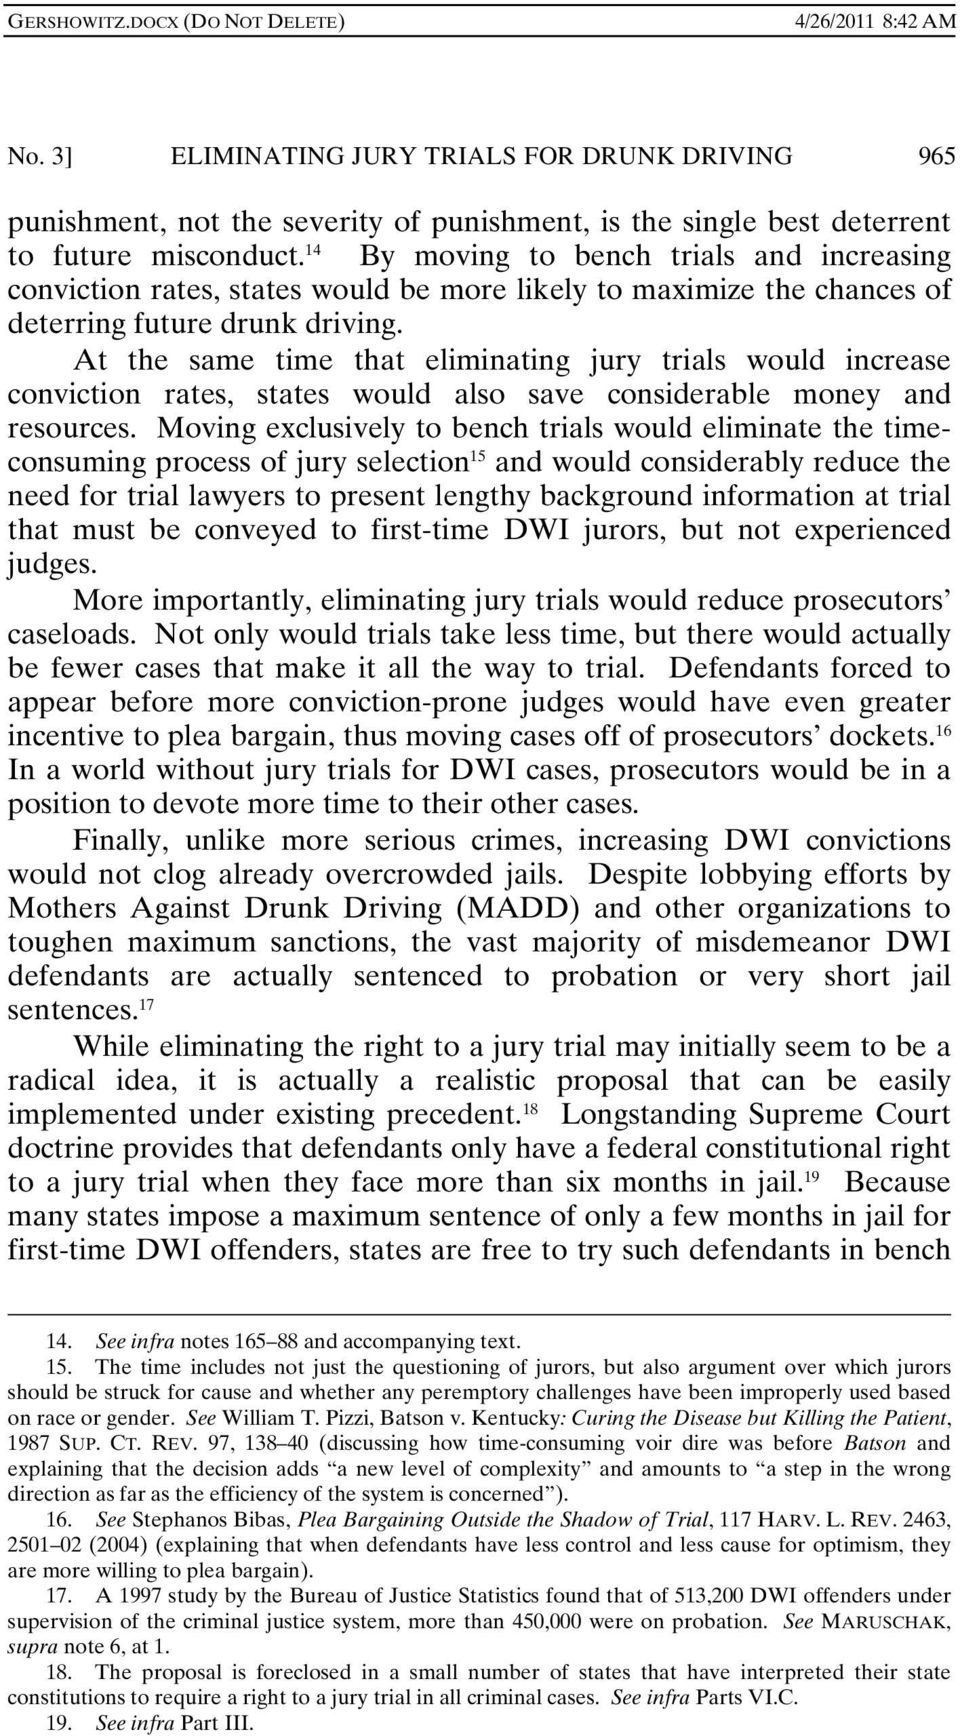 At the same time that eliminating jury trials would increase conviction rates, states would also save considerable money and resources.